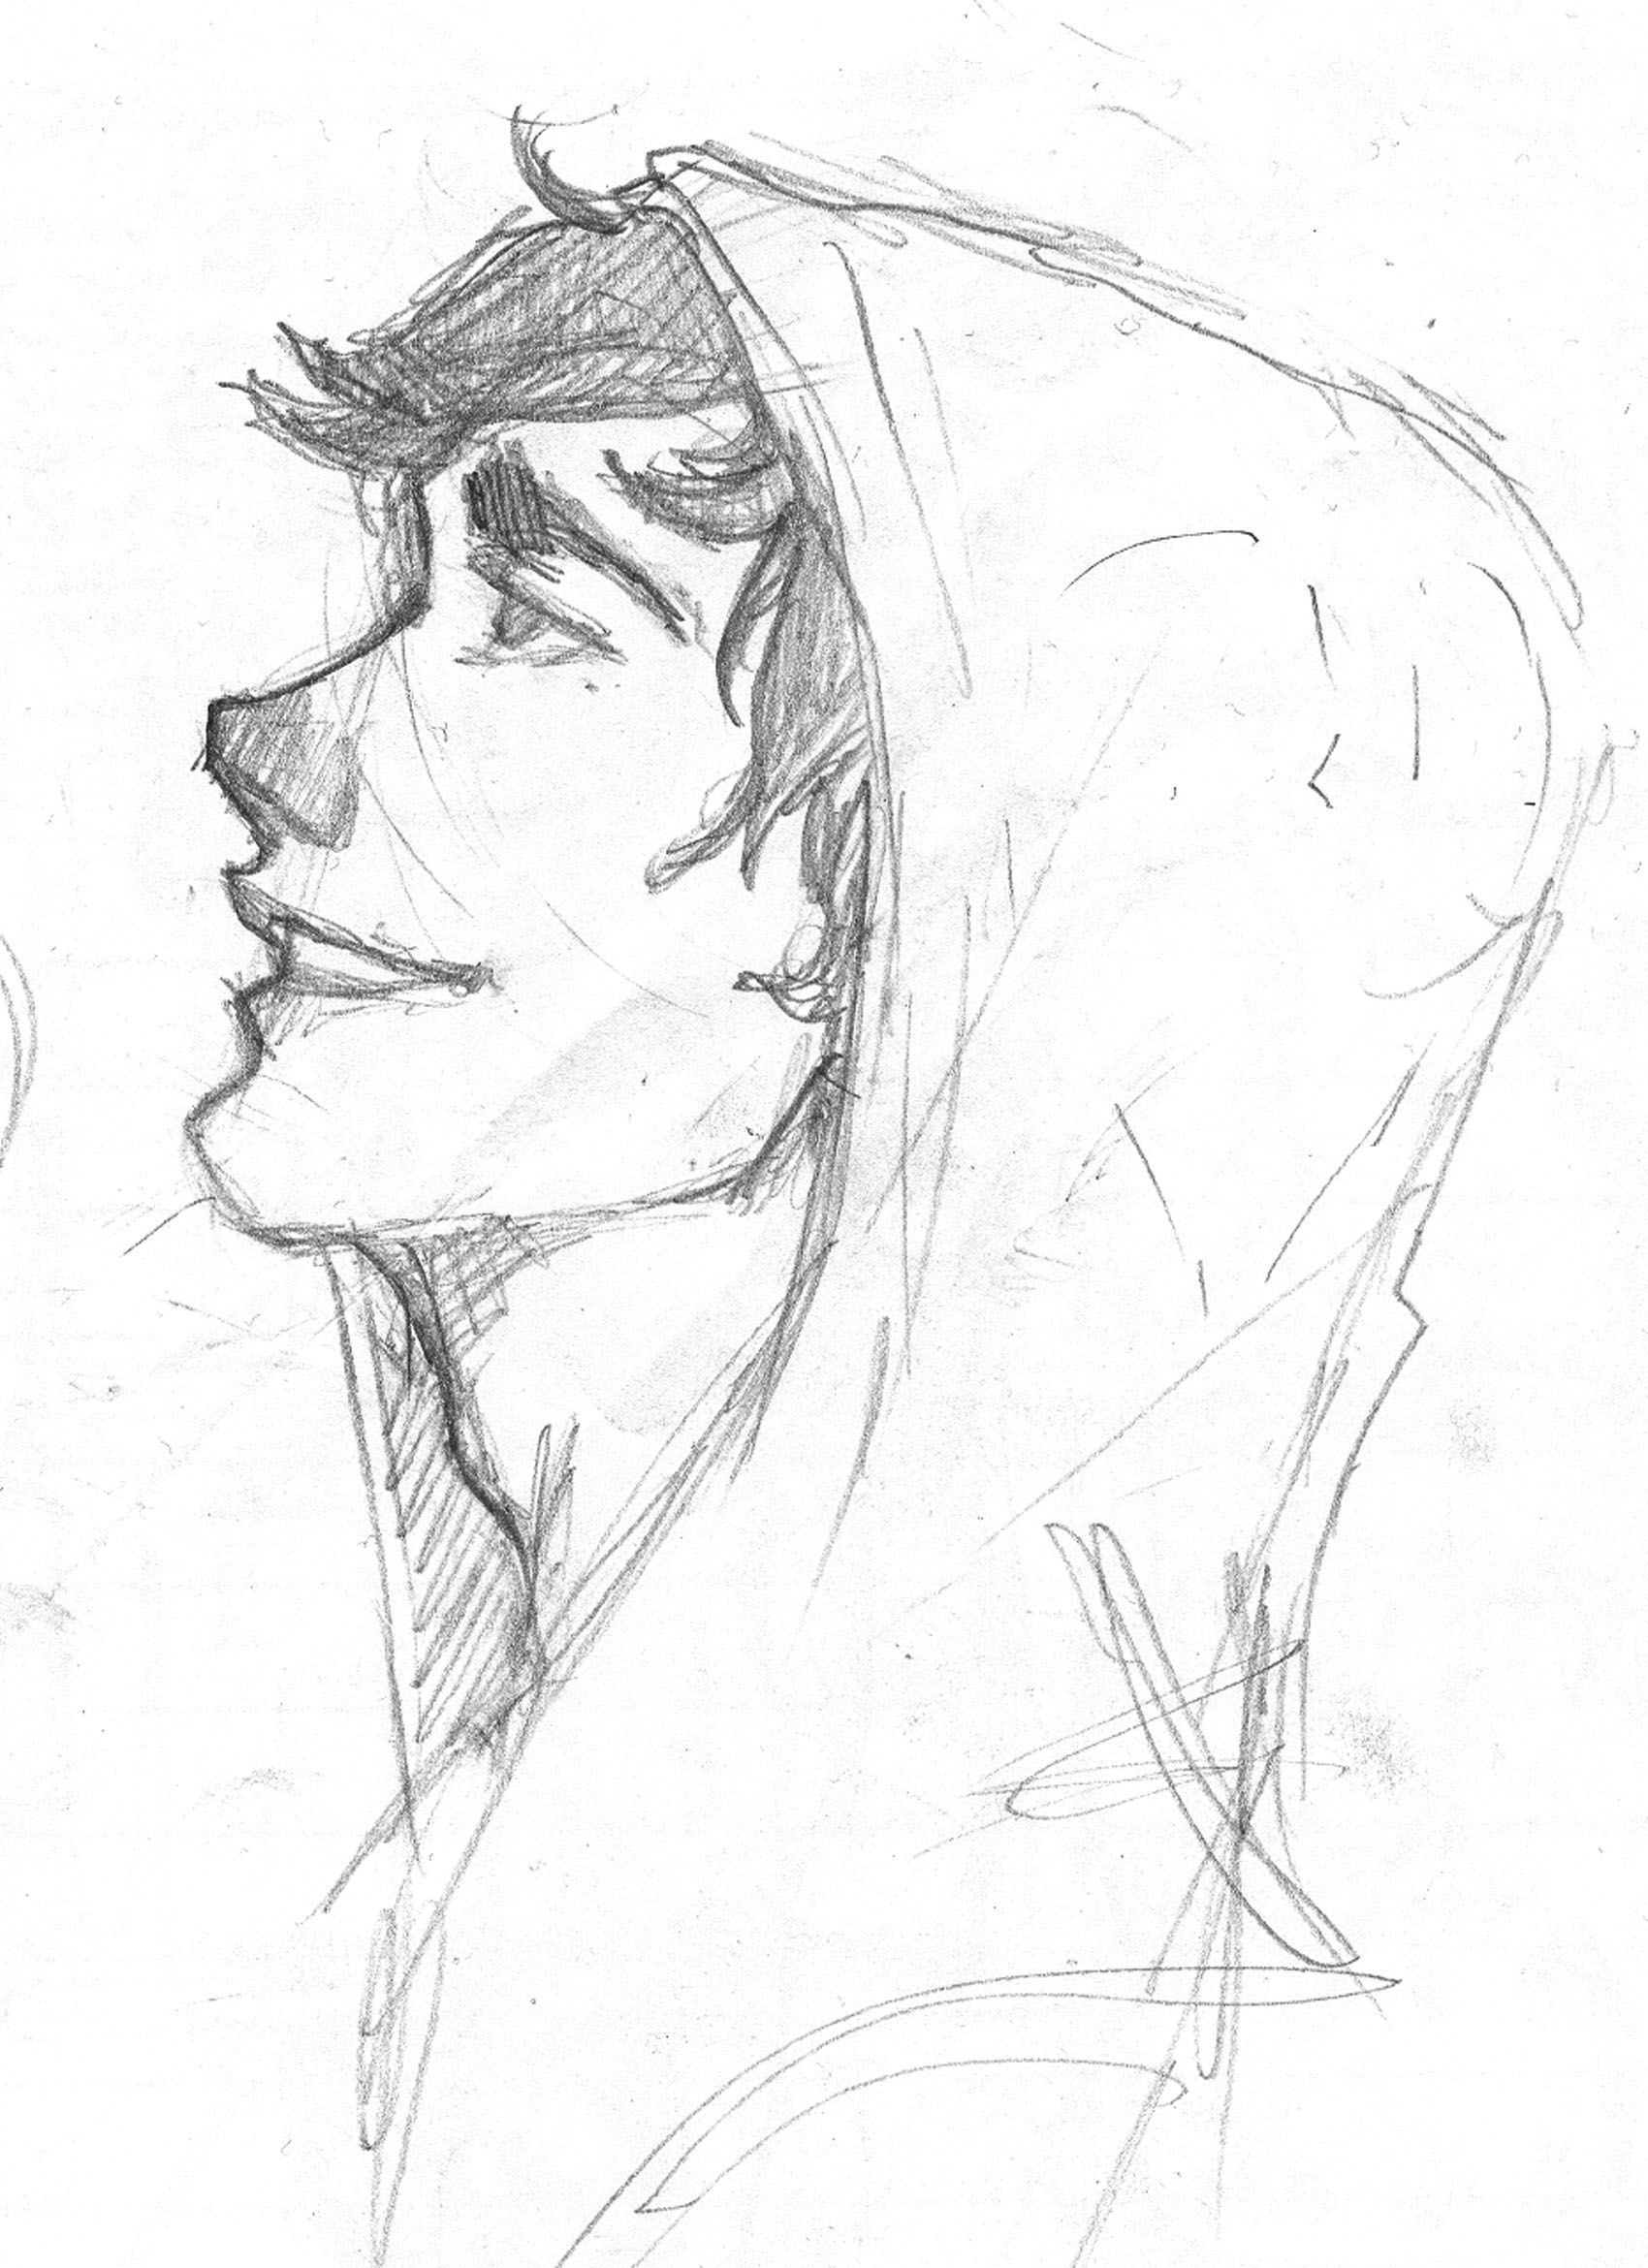 Pin by Caroline on Anime in 2020 | Boy cartoon drawing, Drawing people,  Sketches